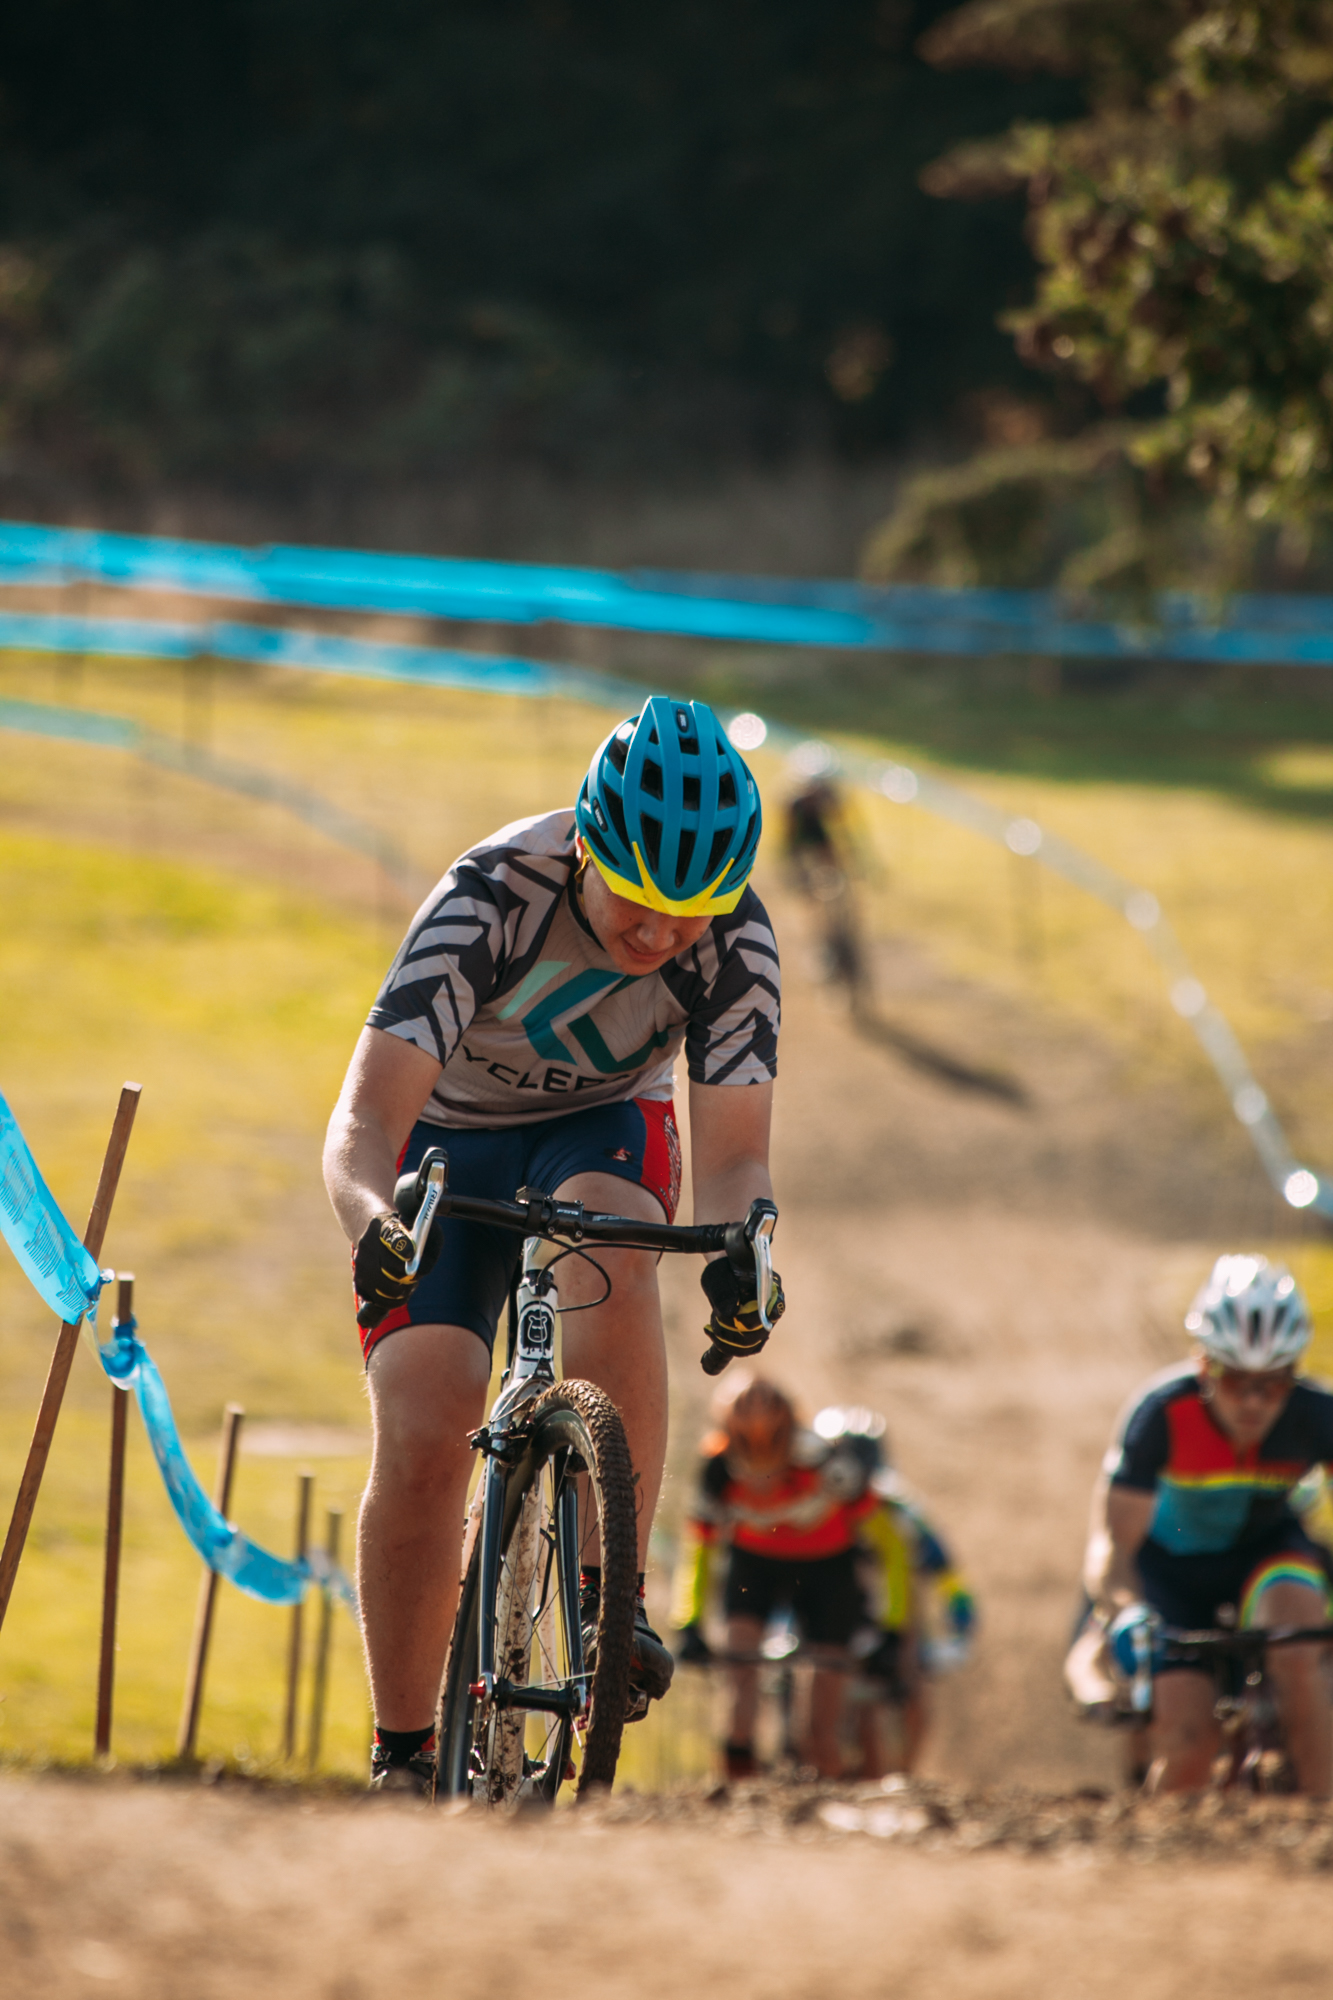 Cyclocross18_CCCX_RainierHS-208-mettlecycling.jpg